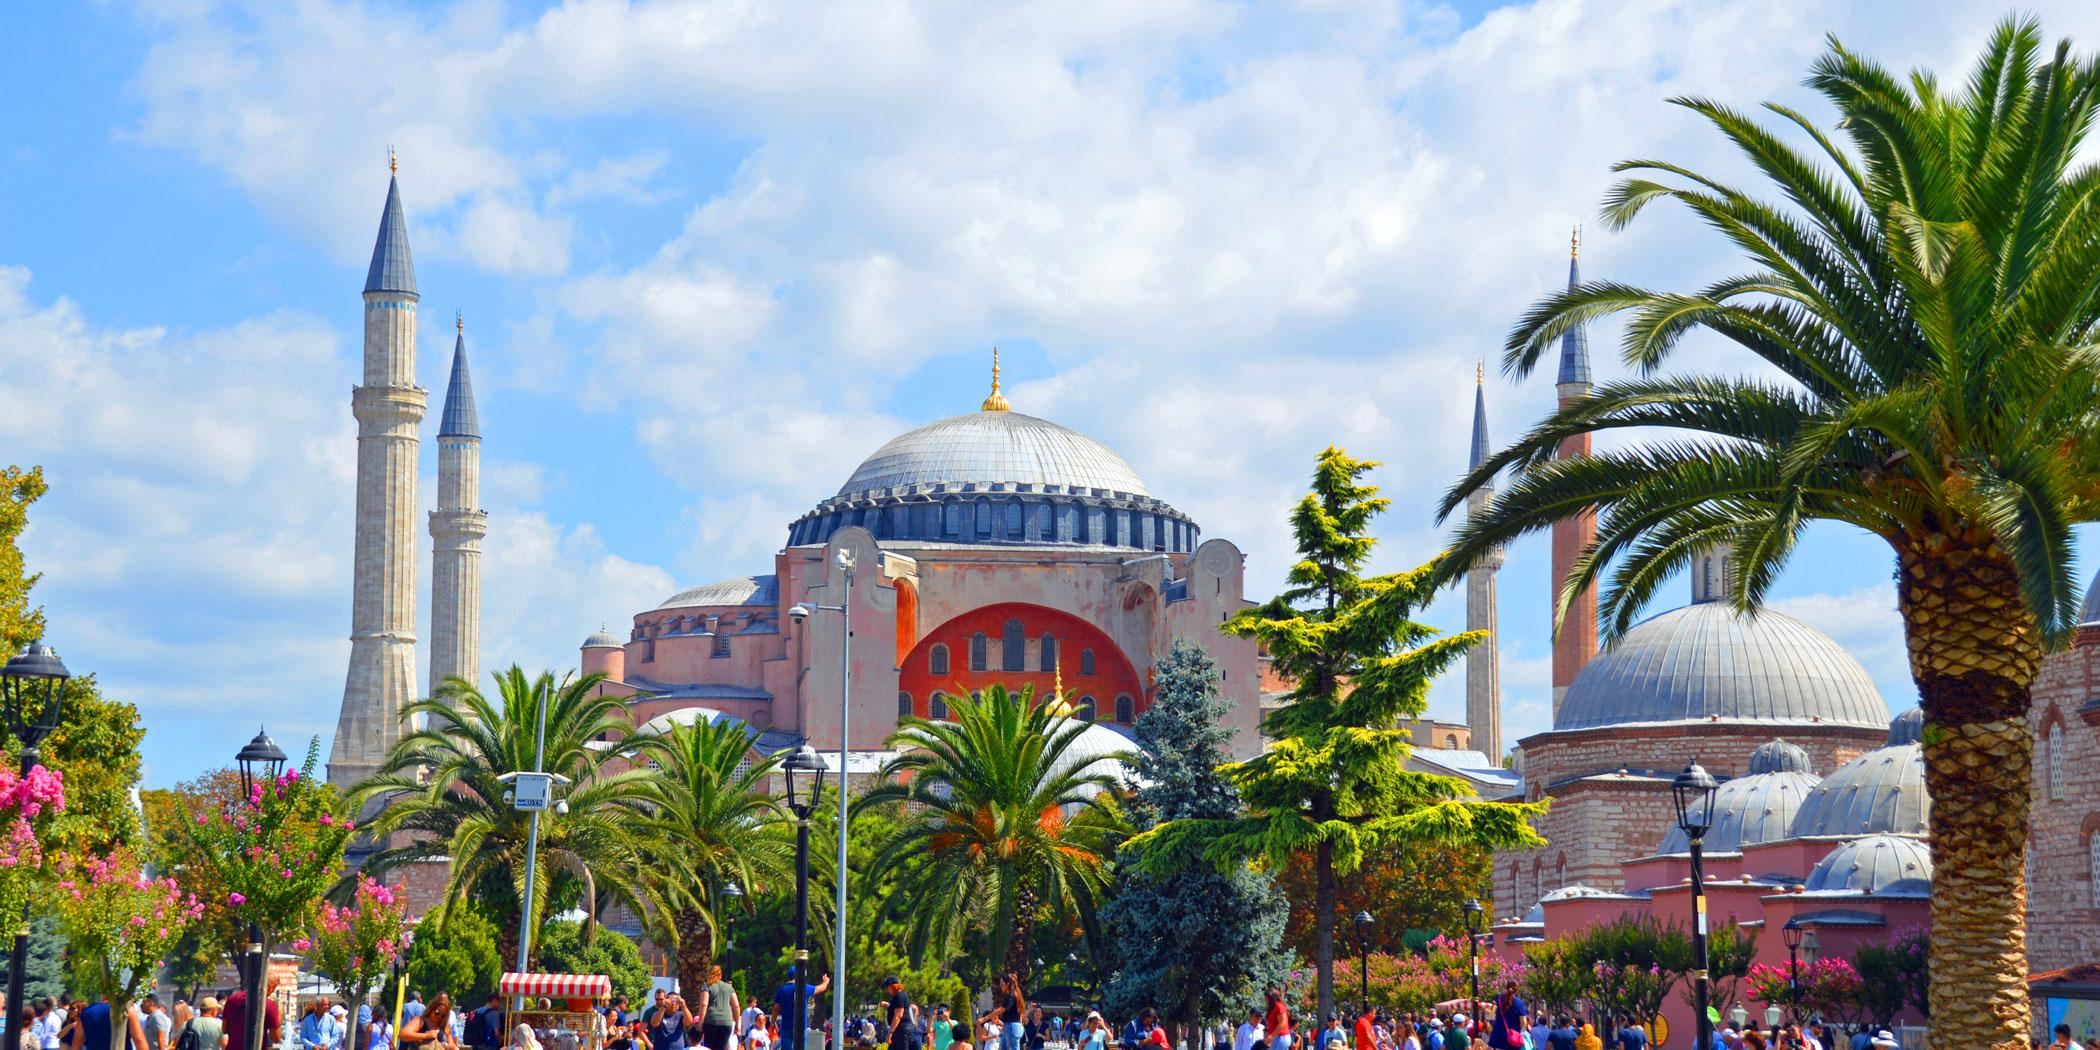 Hagia Sophia Photo Adobe Stock